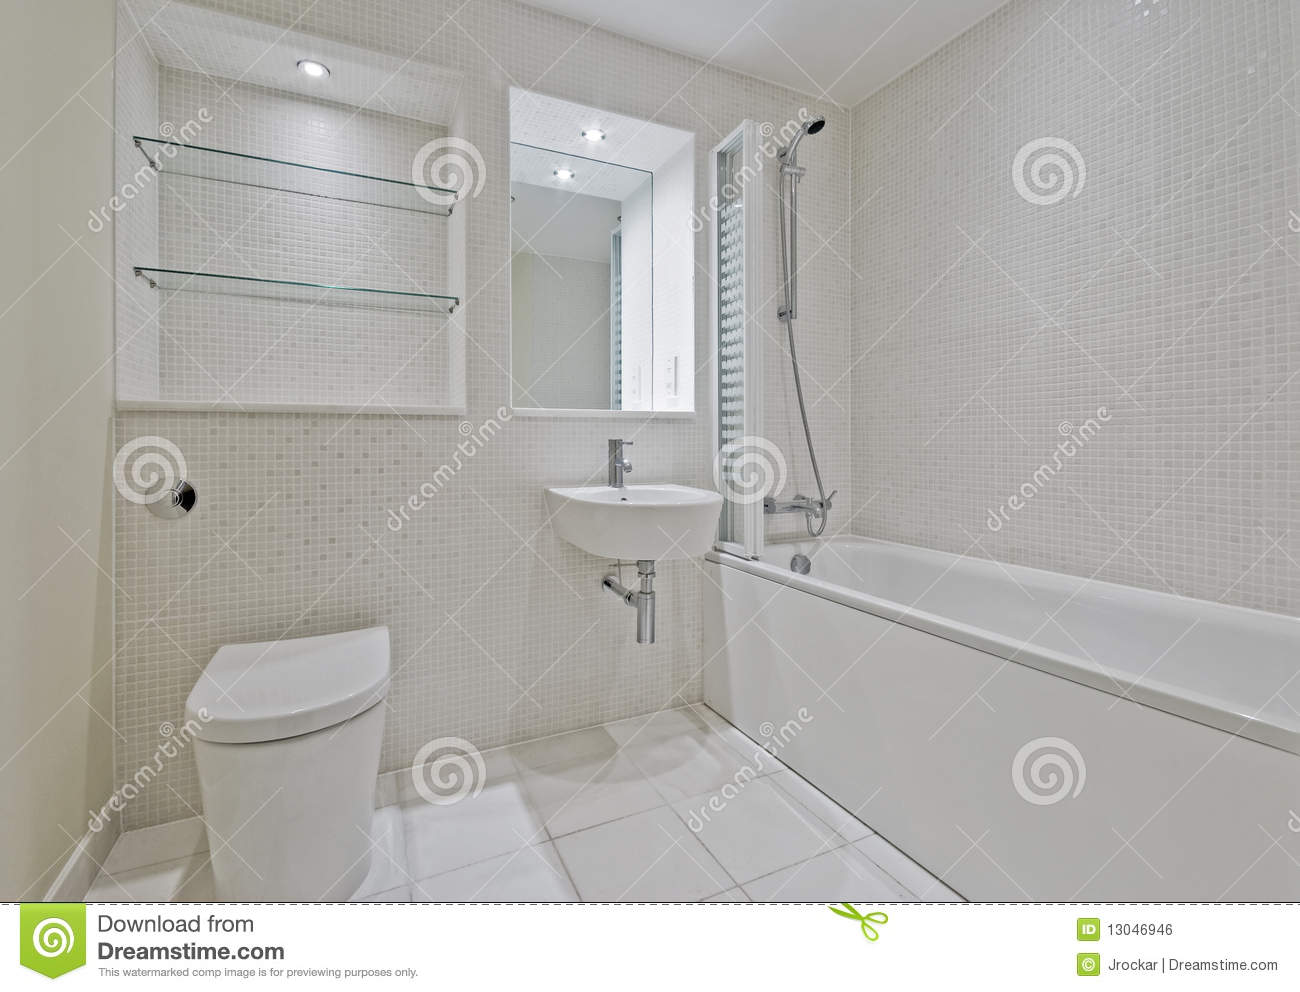 Bathroom With Mosaic Tiles Royalty Free Stock Image